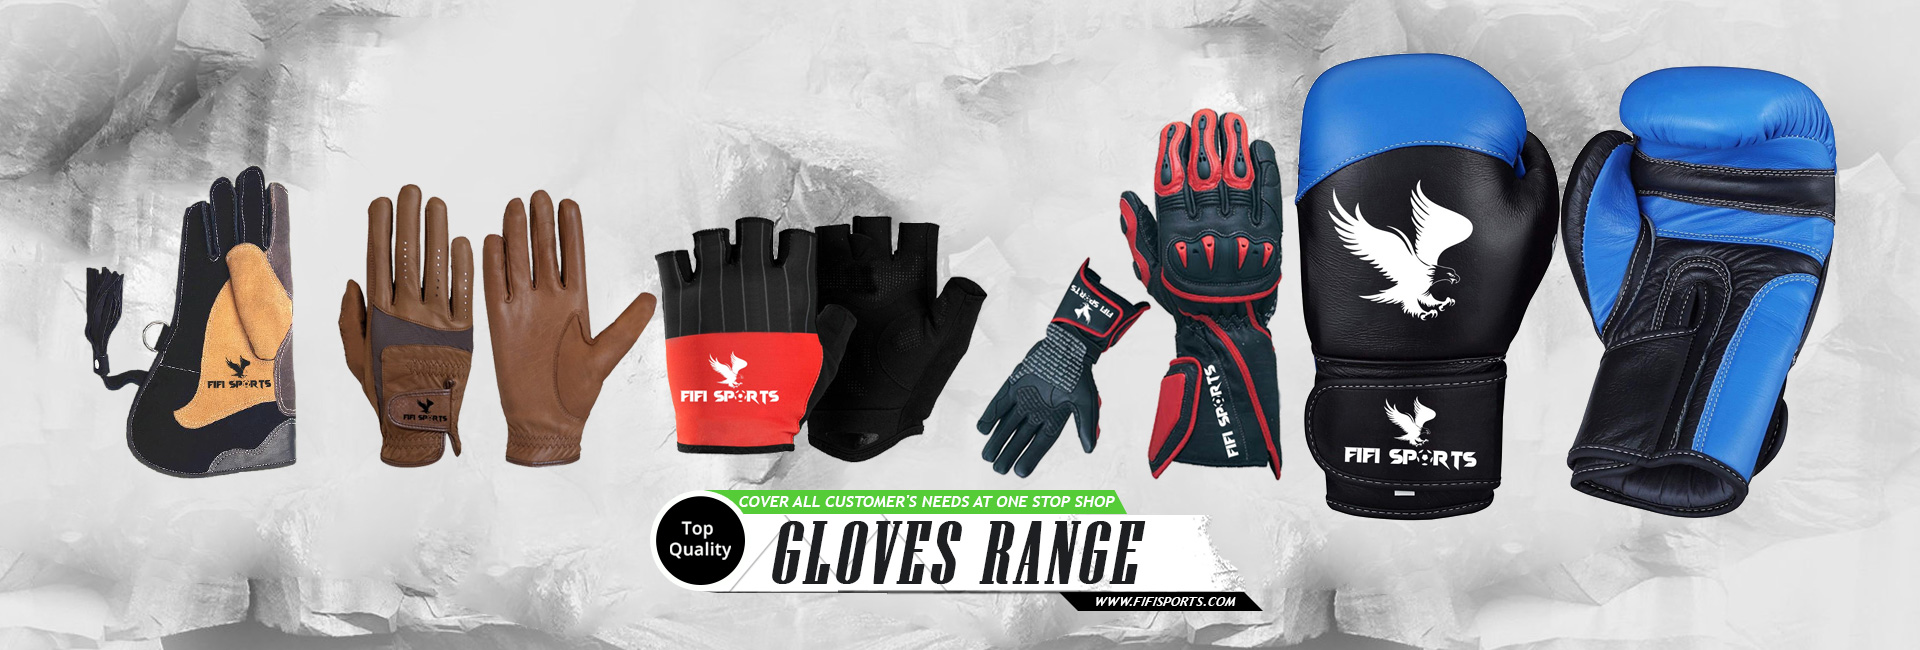 Gloves Range